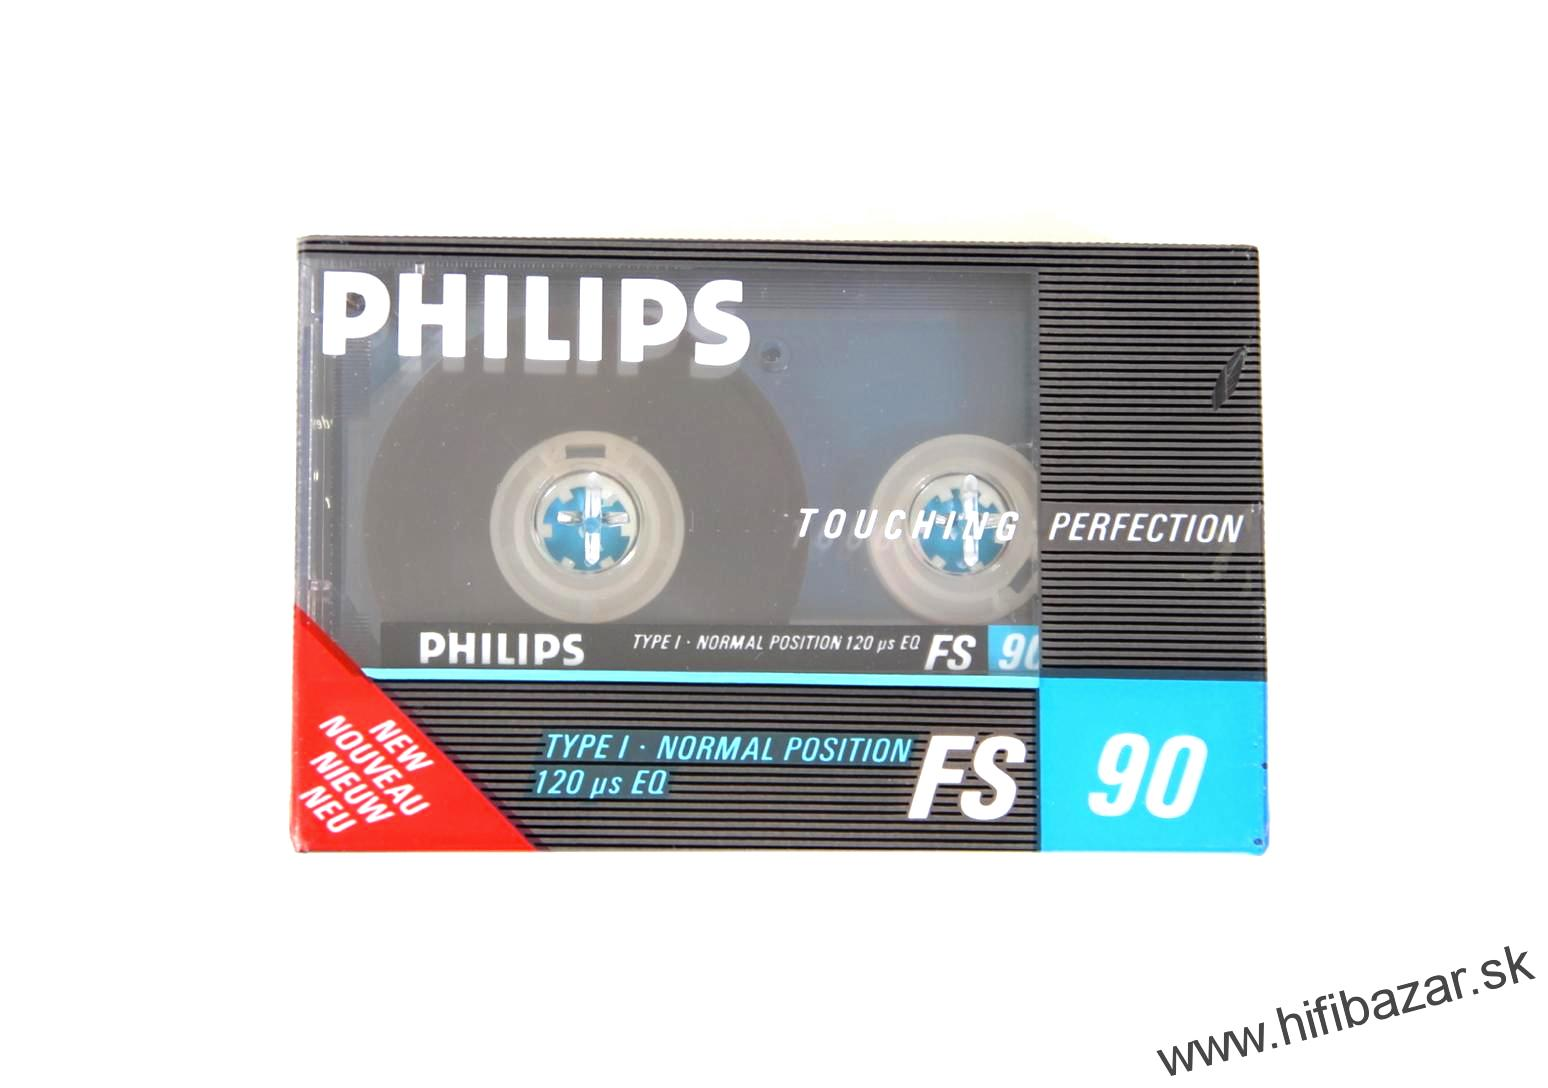 PHILIPS FS-90 Position Normal